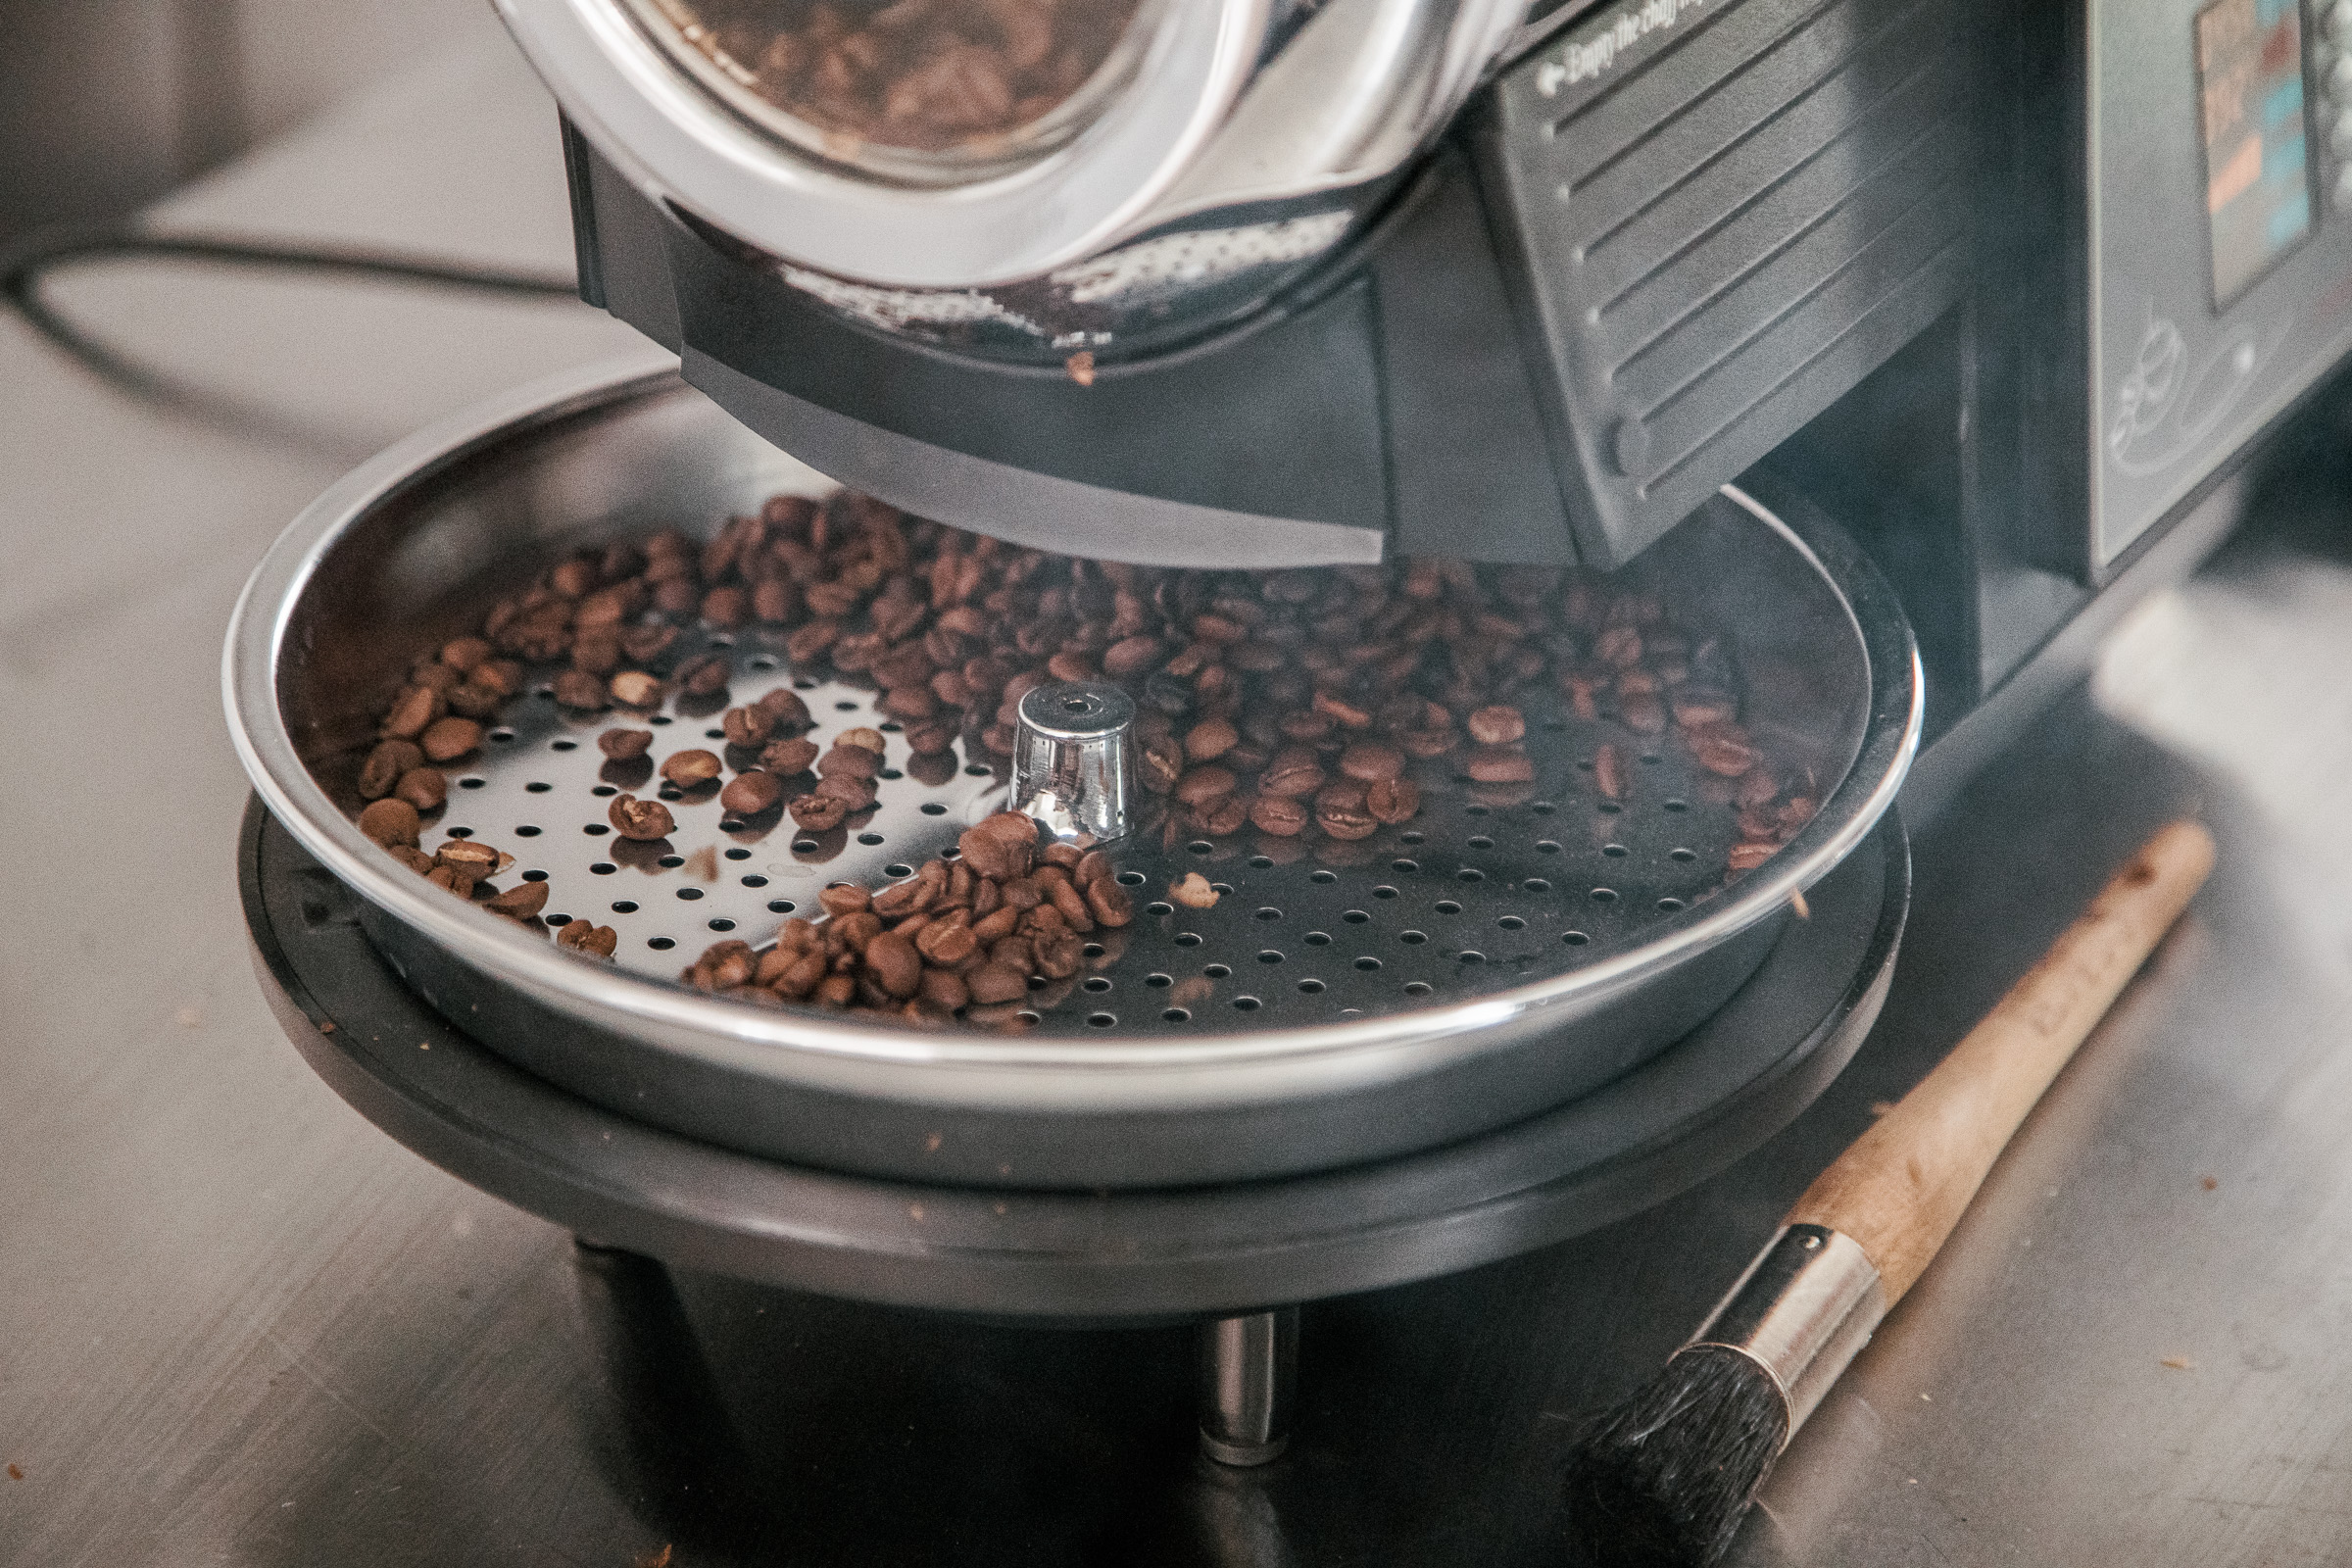 A closeup of the Hottop Coffee Roaster's cooling tray, while beans are dropping from the roasting chamber with smoke billowing out.